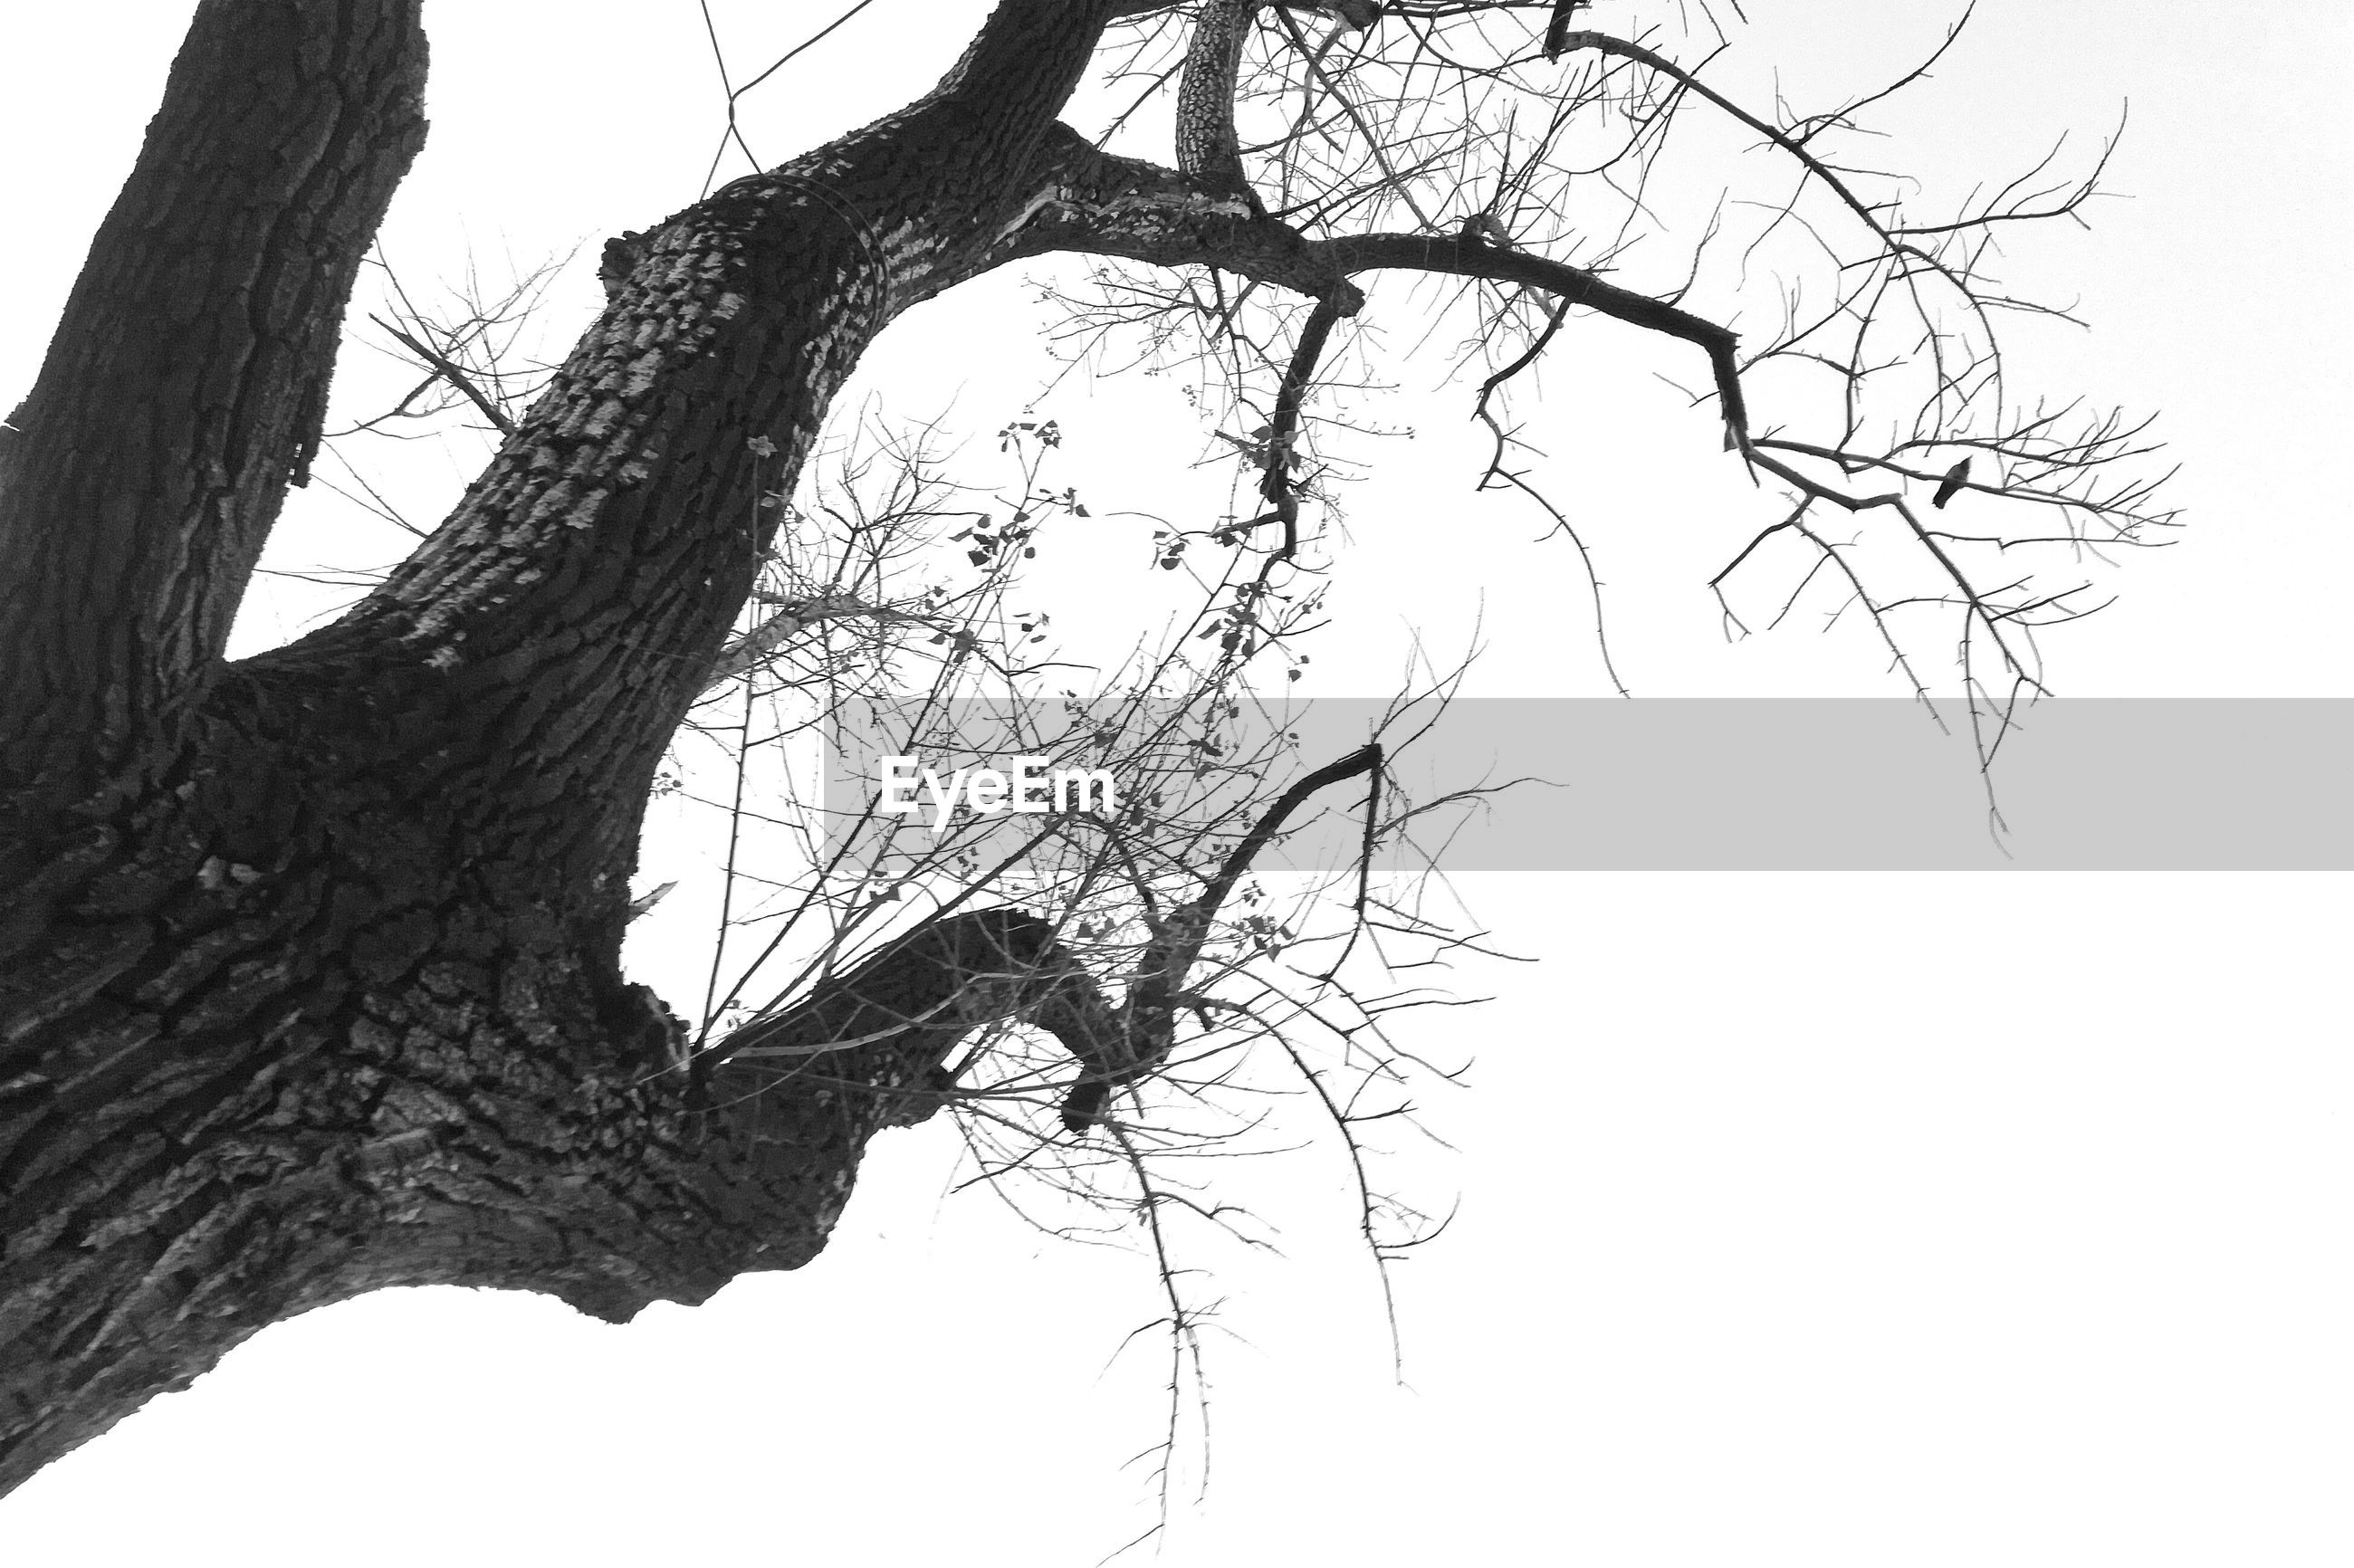 LOW ANGLE VIEW OF DEAD TREE